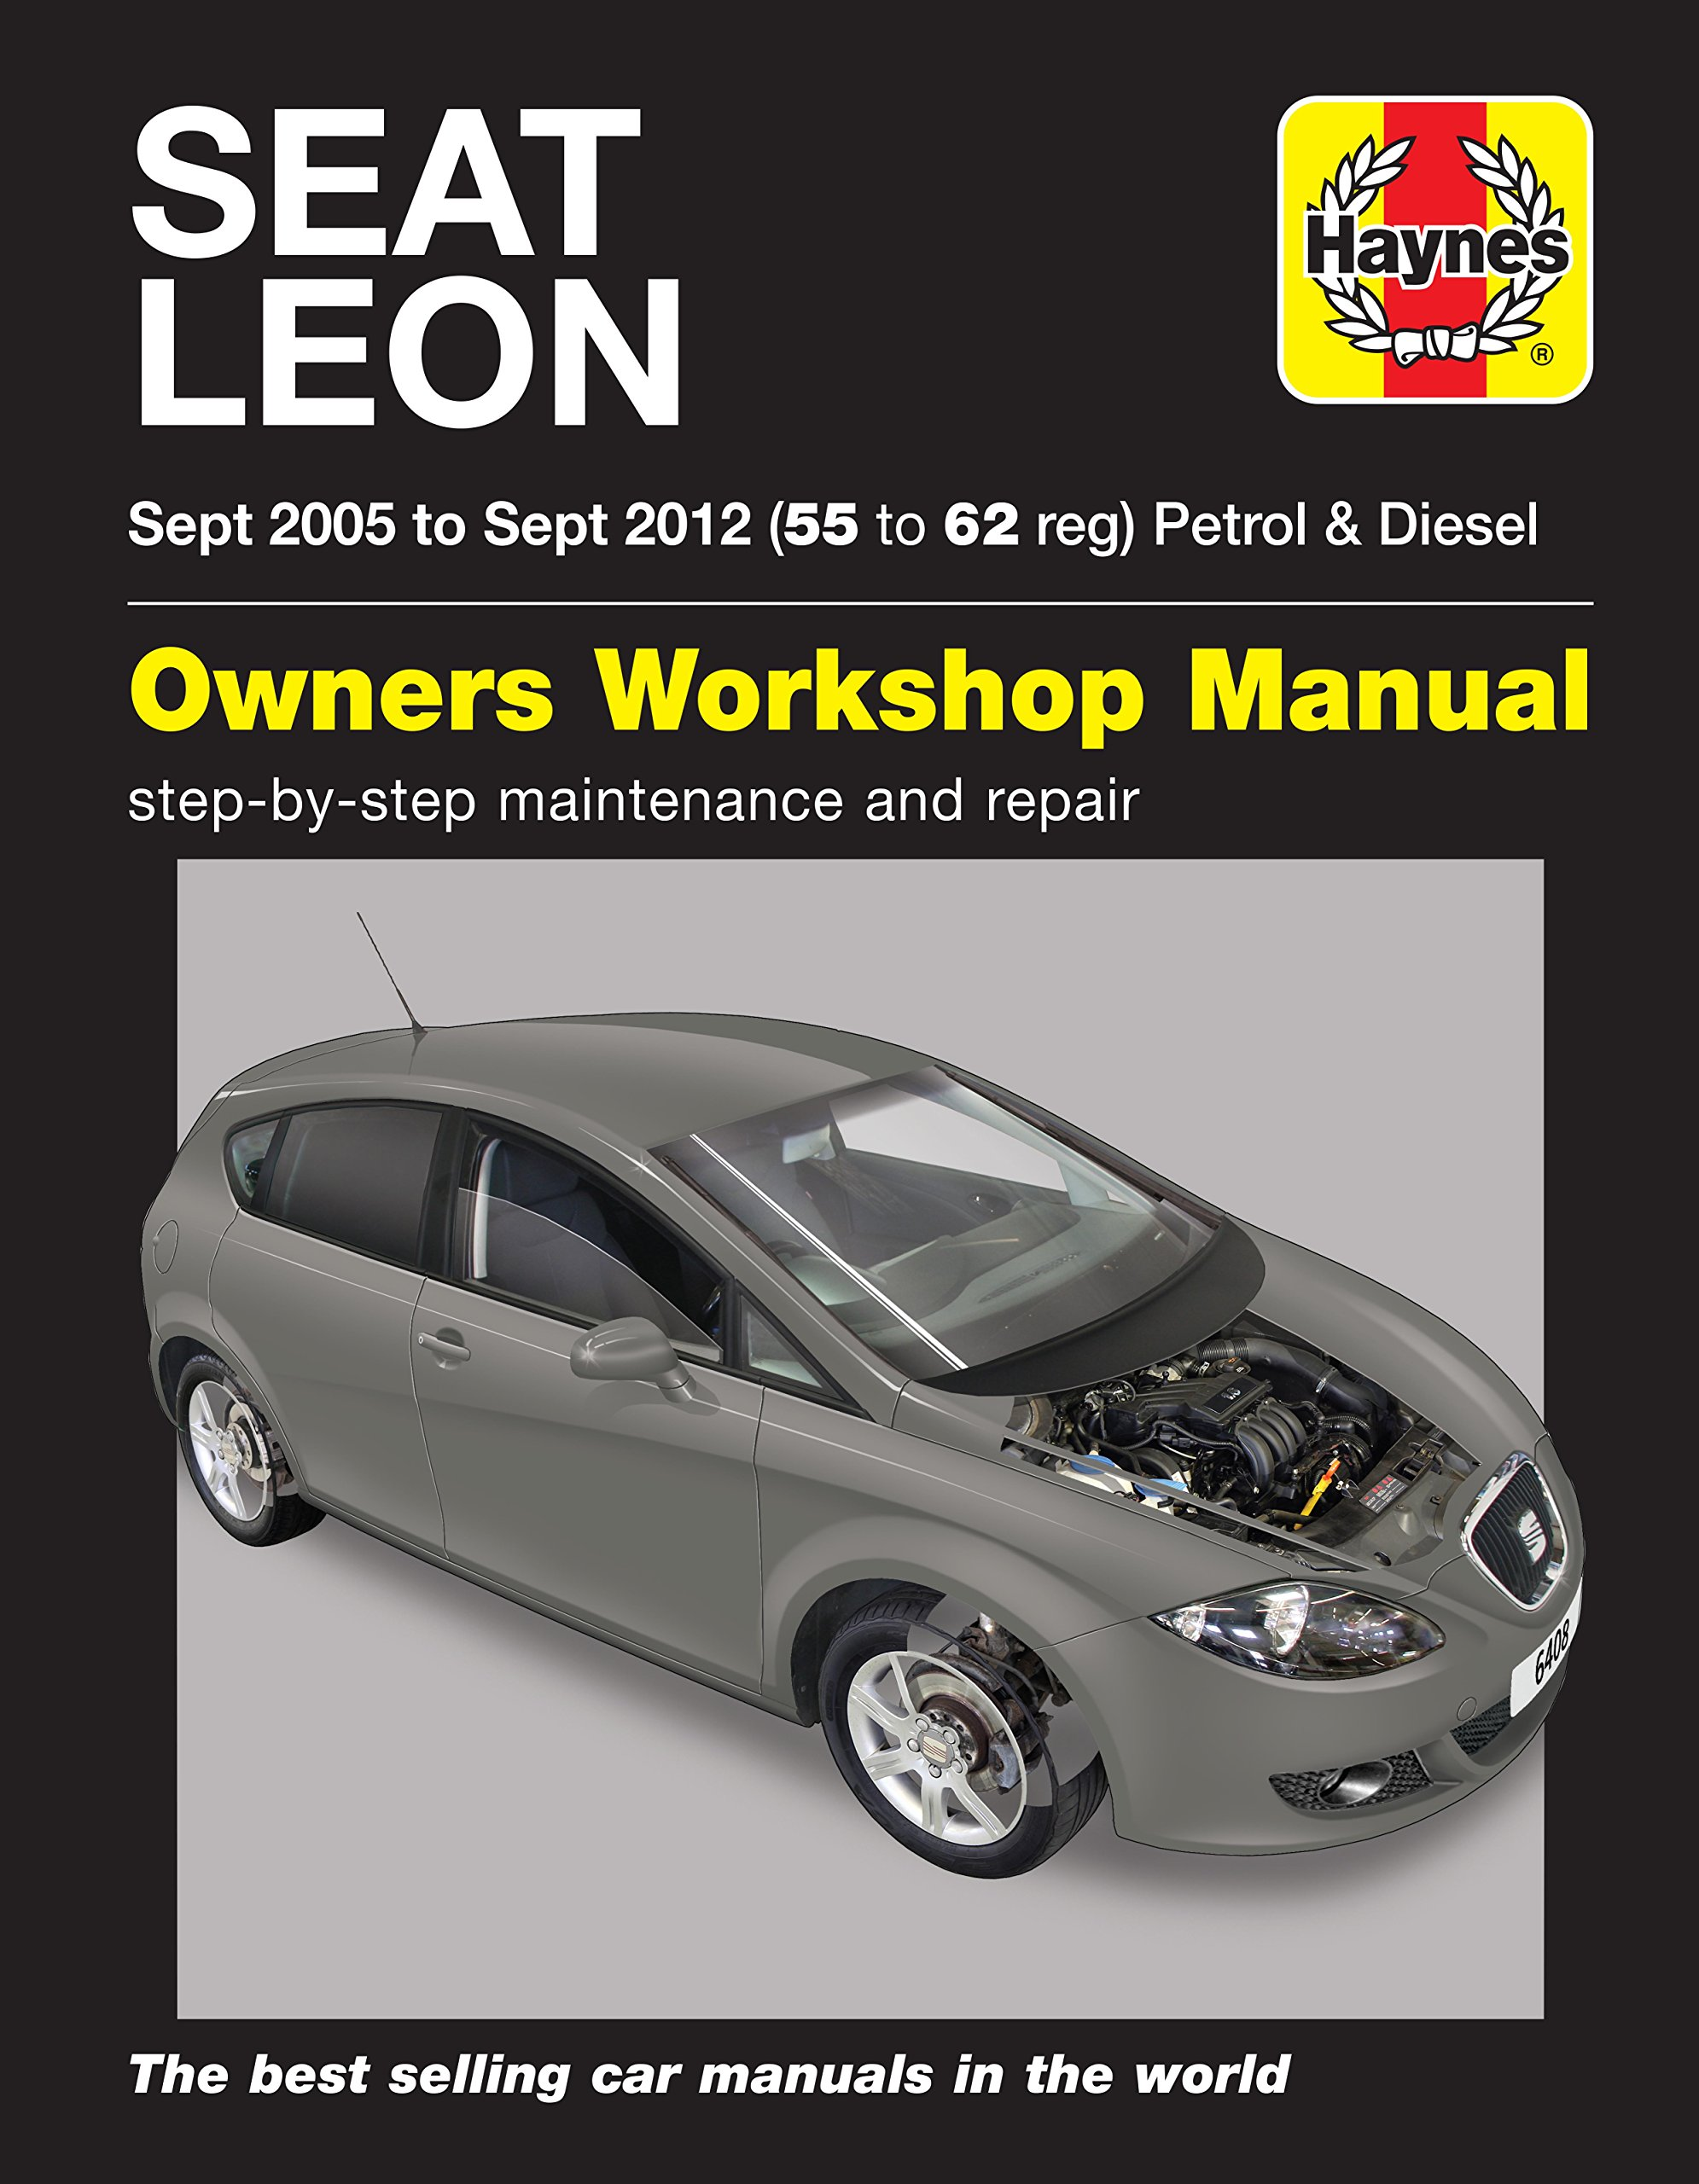 Seat Leon (Sept 05 to Sept 12) 55 to 62 reg: Amazon.es: Mark Storey: Libros en idiomas extranjeros